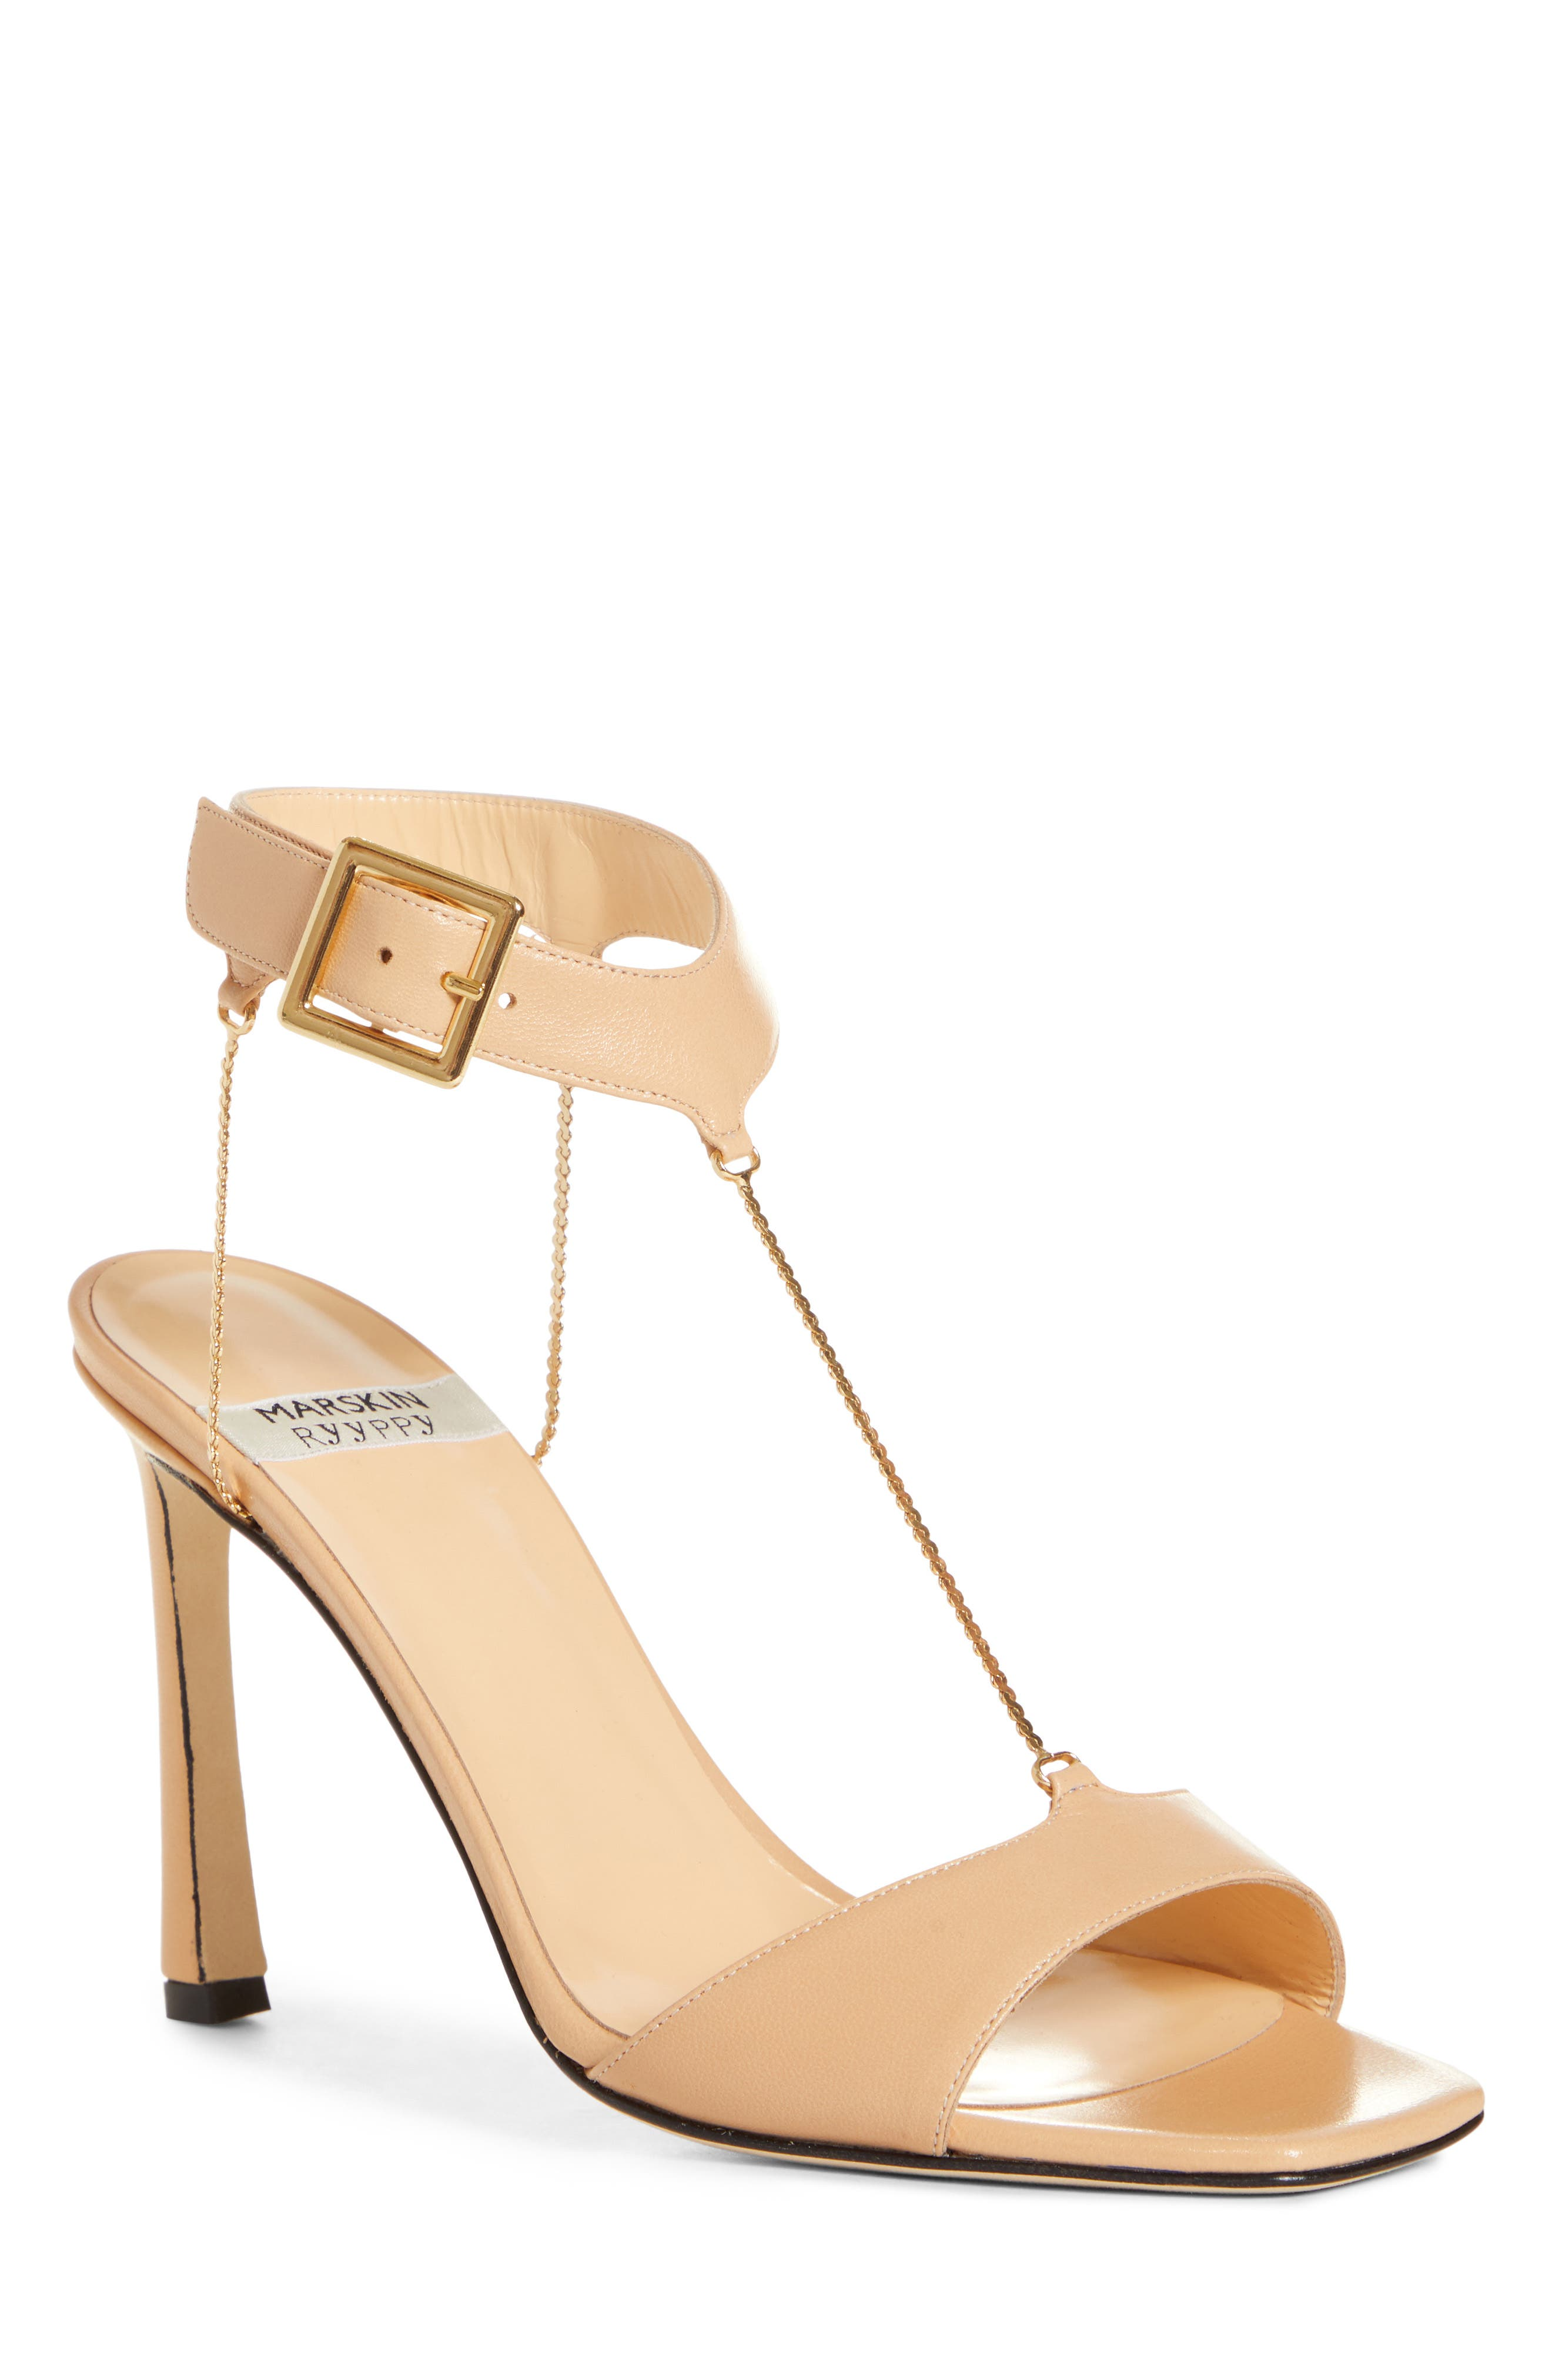 MARSKINRYYPPY Ember Sandal, Main, color, NUDE LEATHER 449